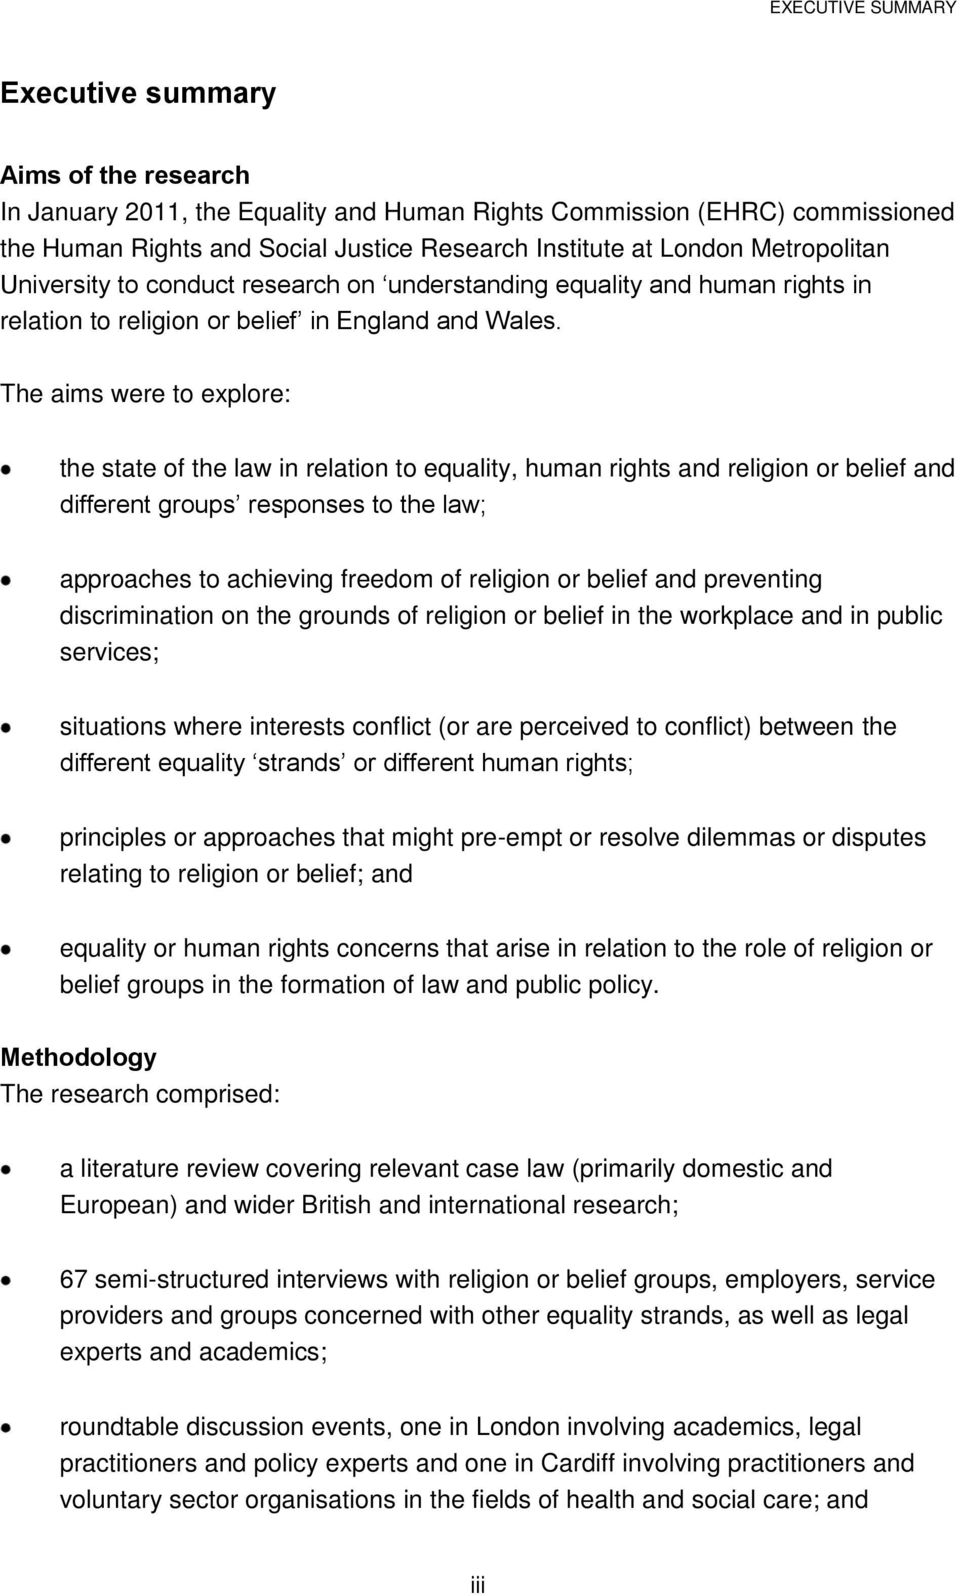 The aims were to explore: the state of the law in relation to equality, human rights and religion or belief and different groups responses to the law; approaches to achieving freedom of religion or